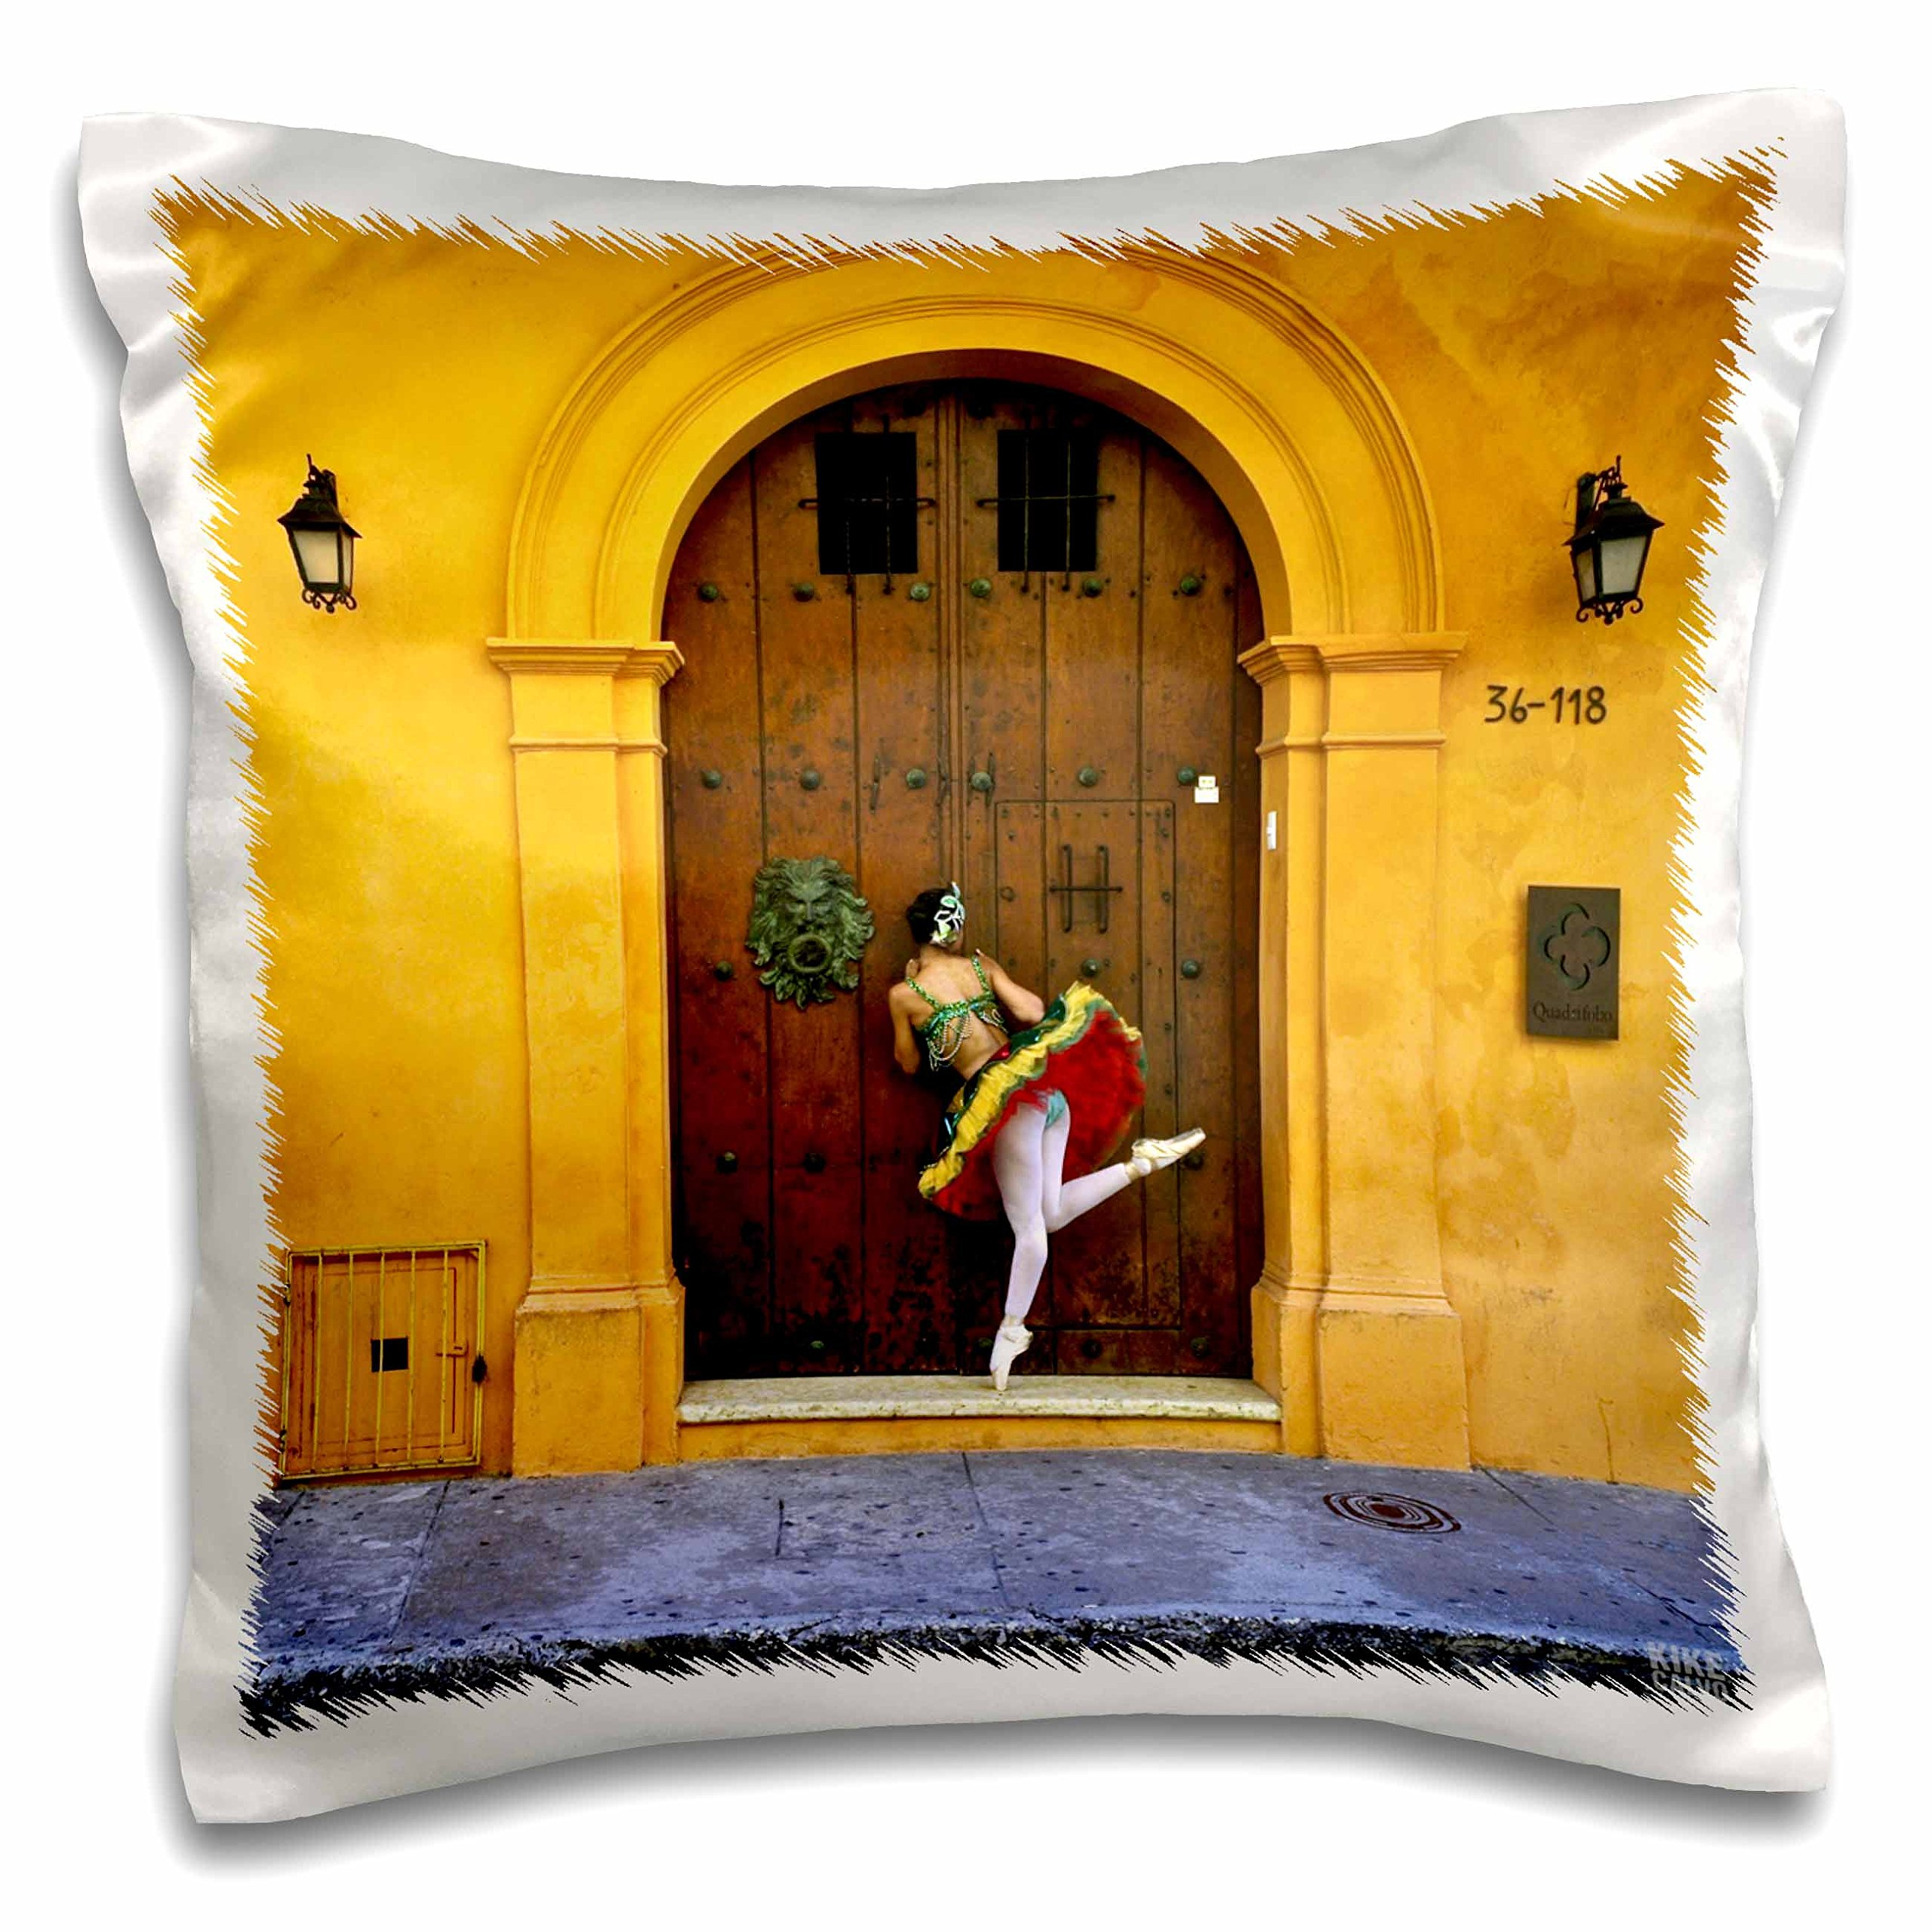 3dRose Gina, a Colombian Professional Ballet Dancer in Cartagena Peaking Through a Wood Door Pillow Case, 16 x 16''